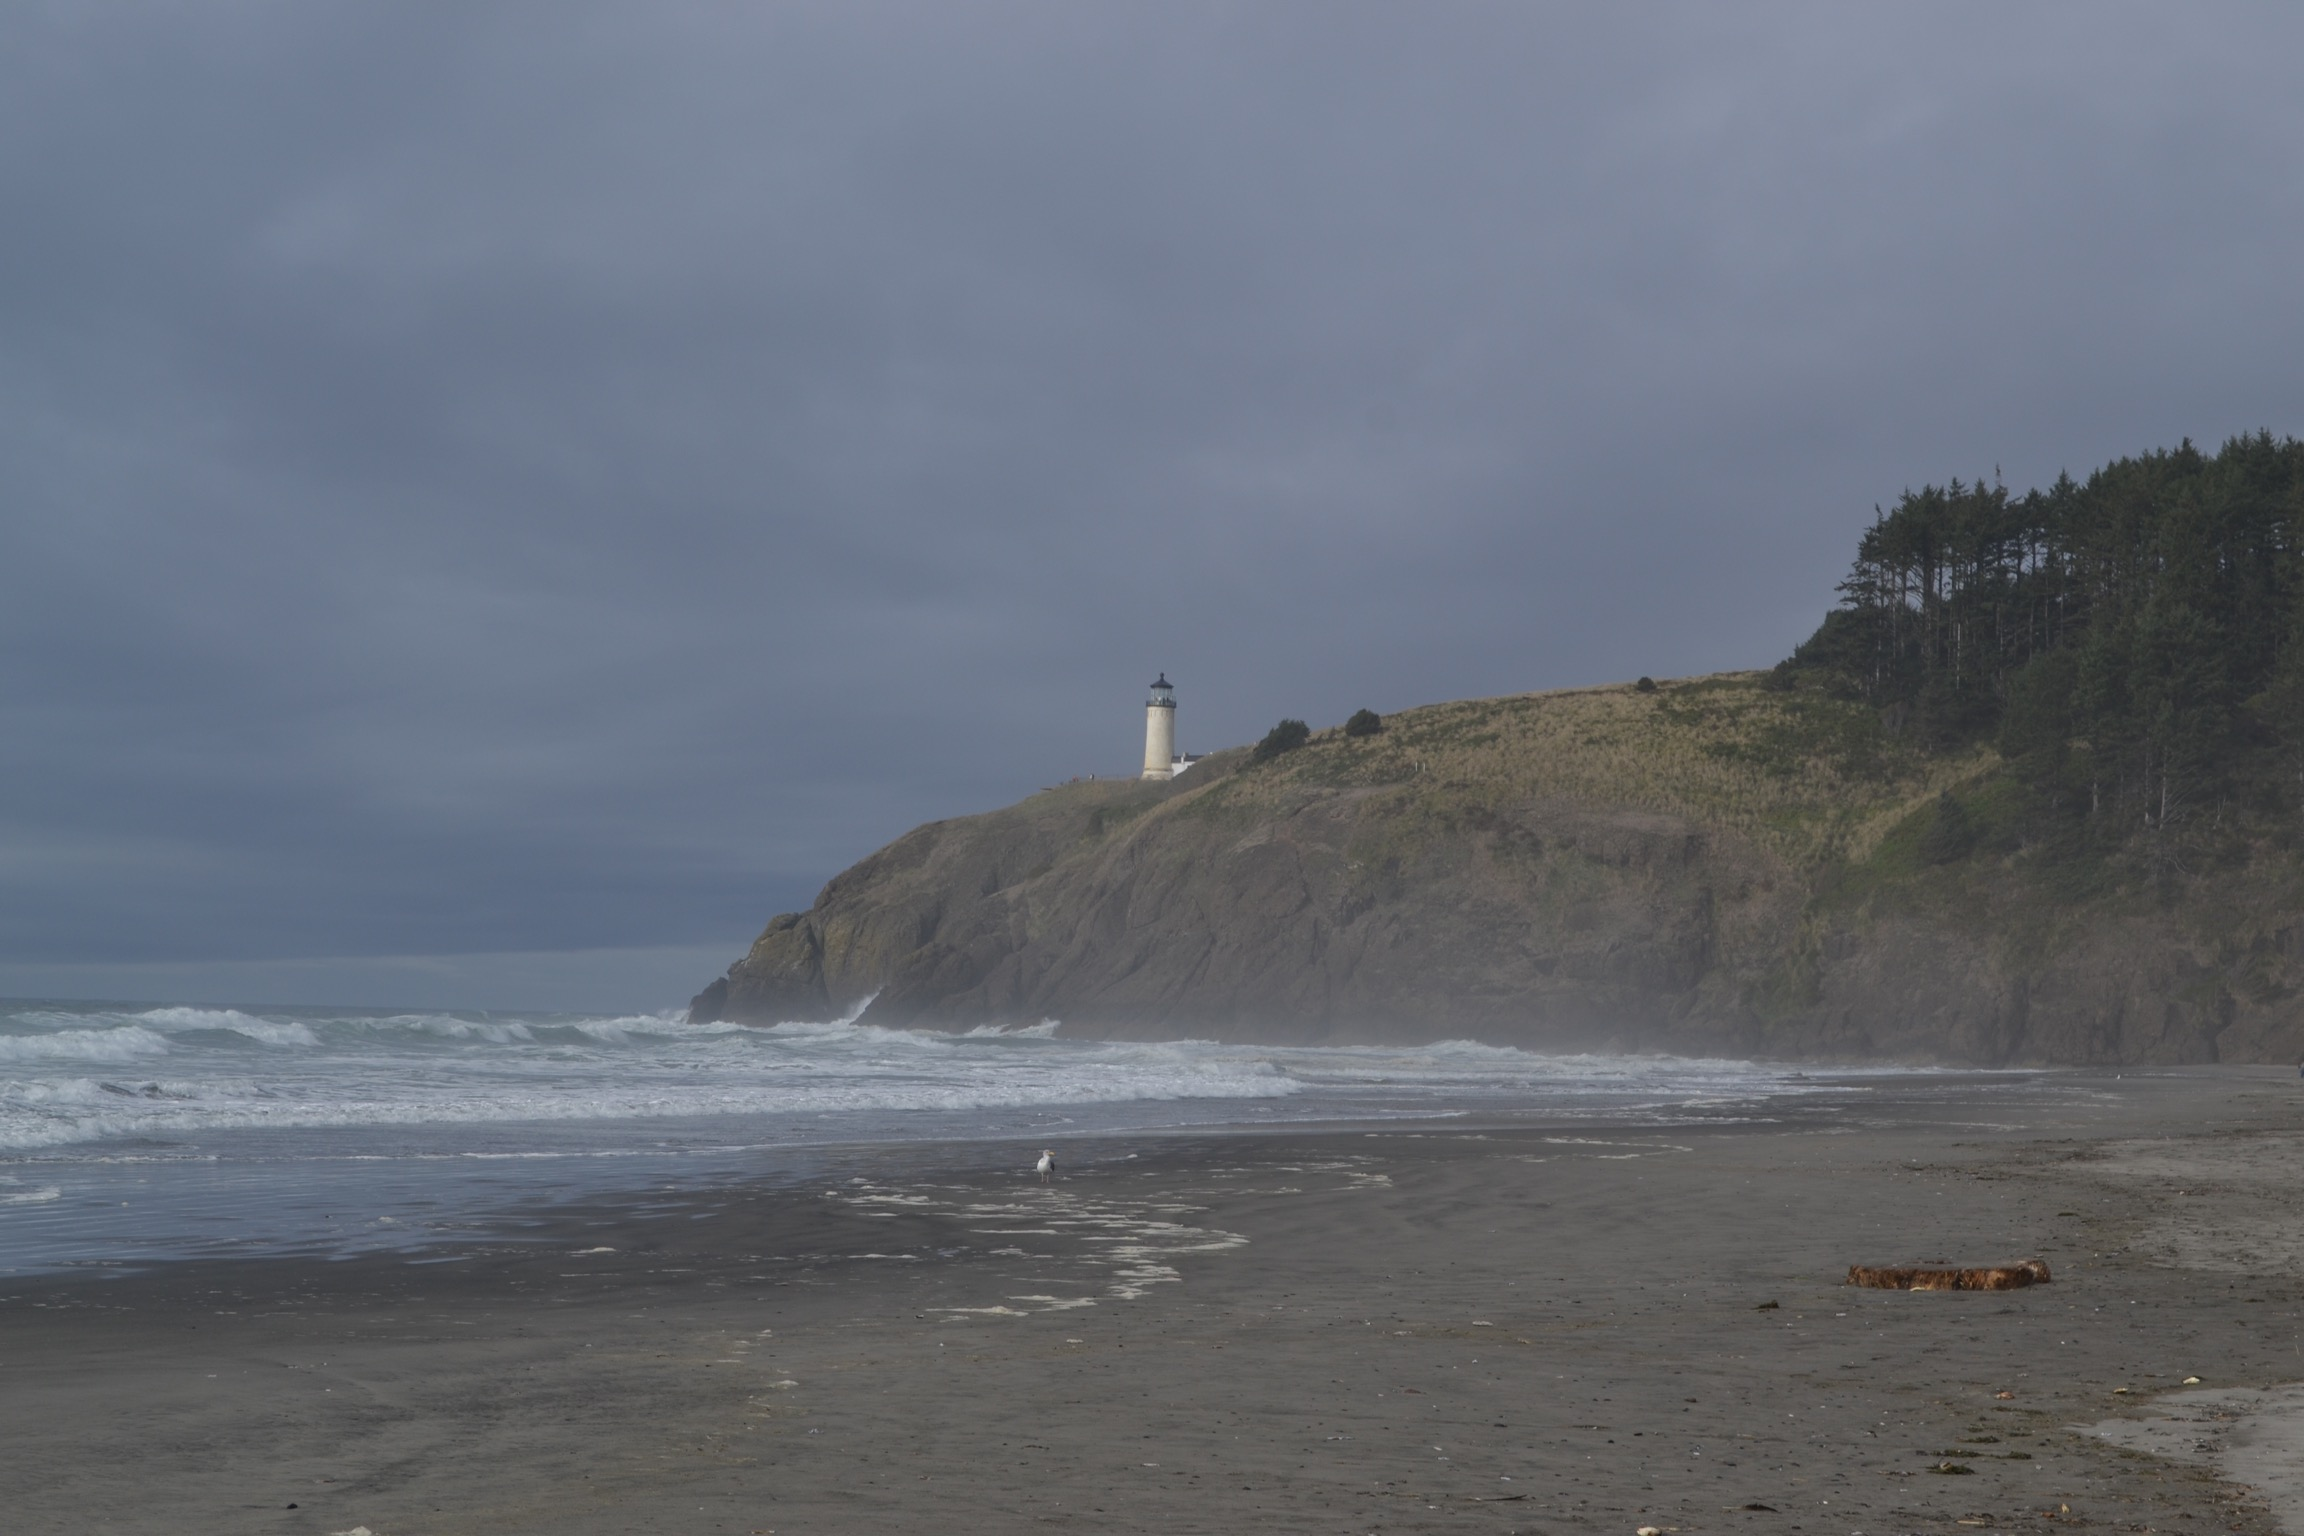 A beach with rough waves and cliffs with a plain white lighthouse before a gray sky.